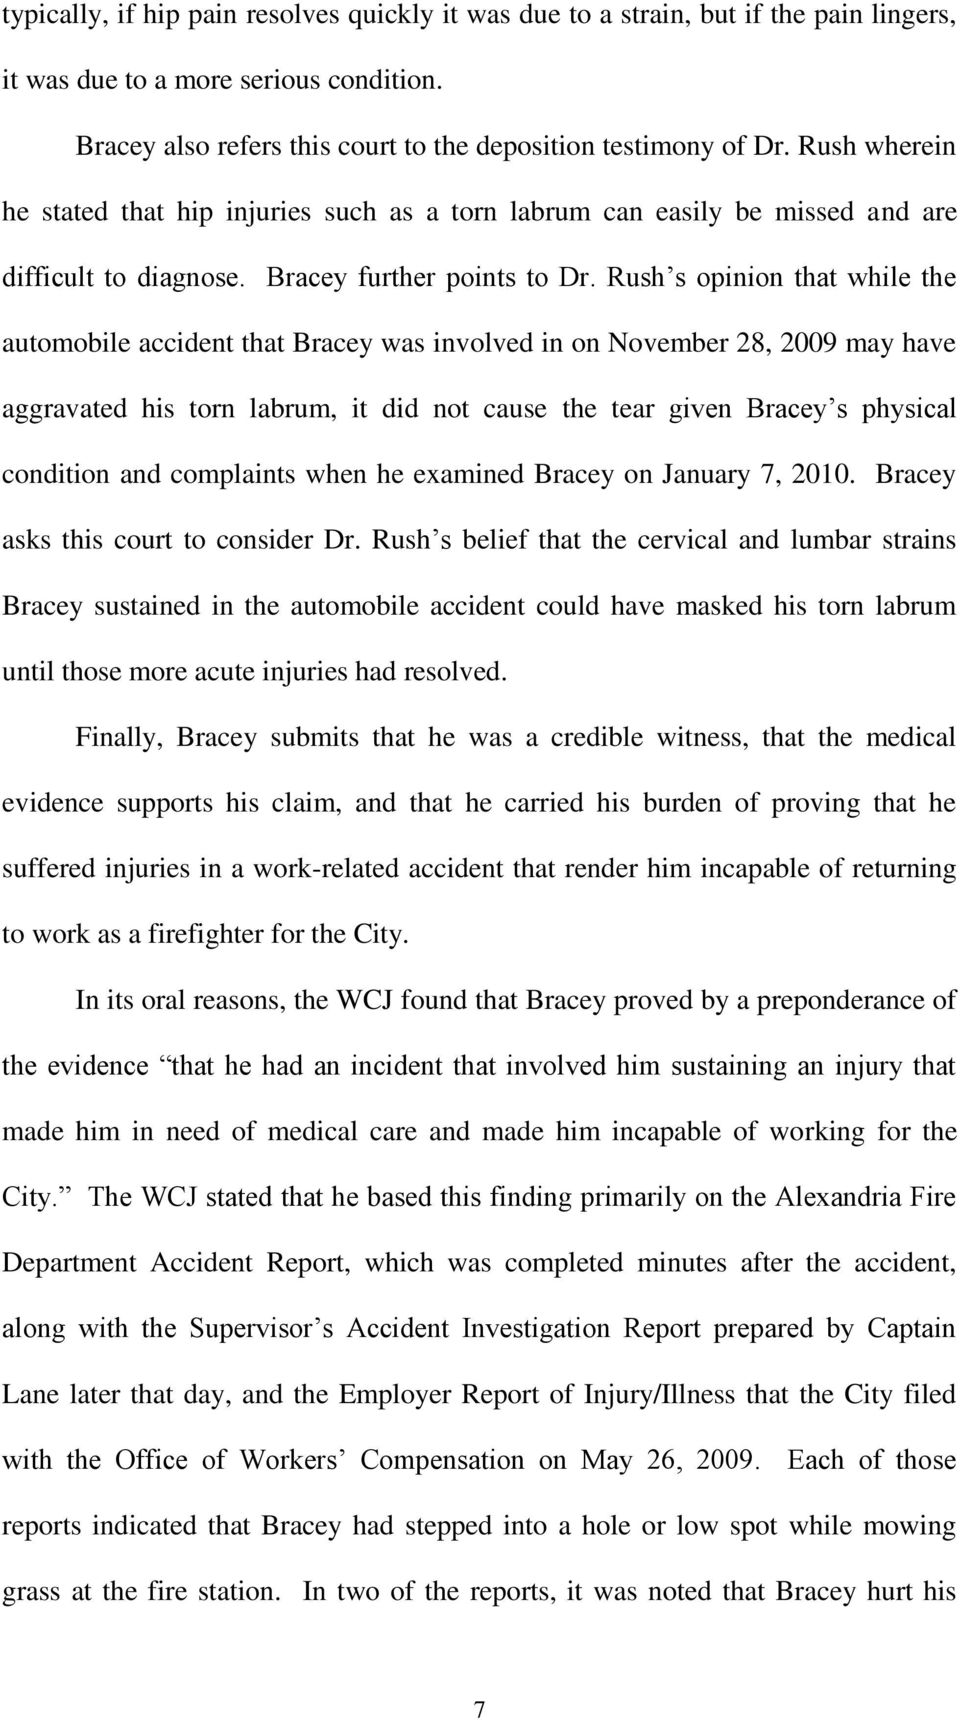 Rush s opinion that while the automobile accident that Bracey was involved in on November 28, 2009 may have aggravated his torn labrum, it did not cause the tear given Bracey s physical condition and